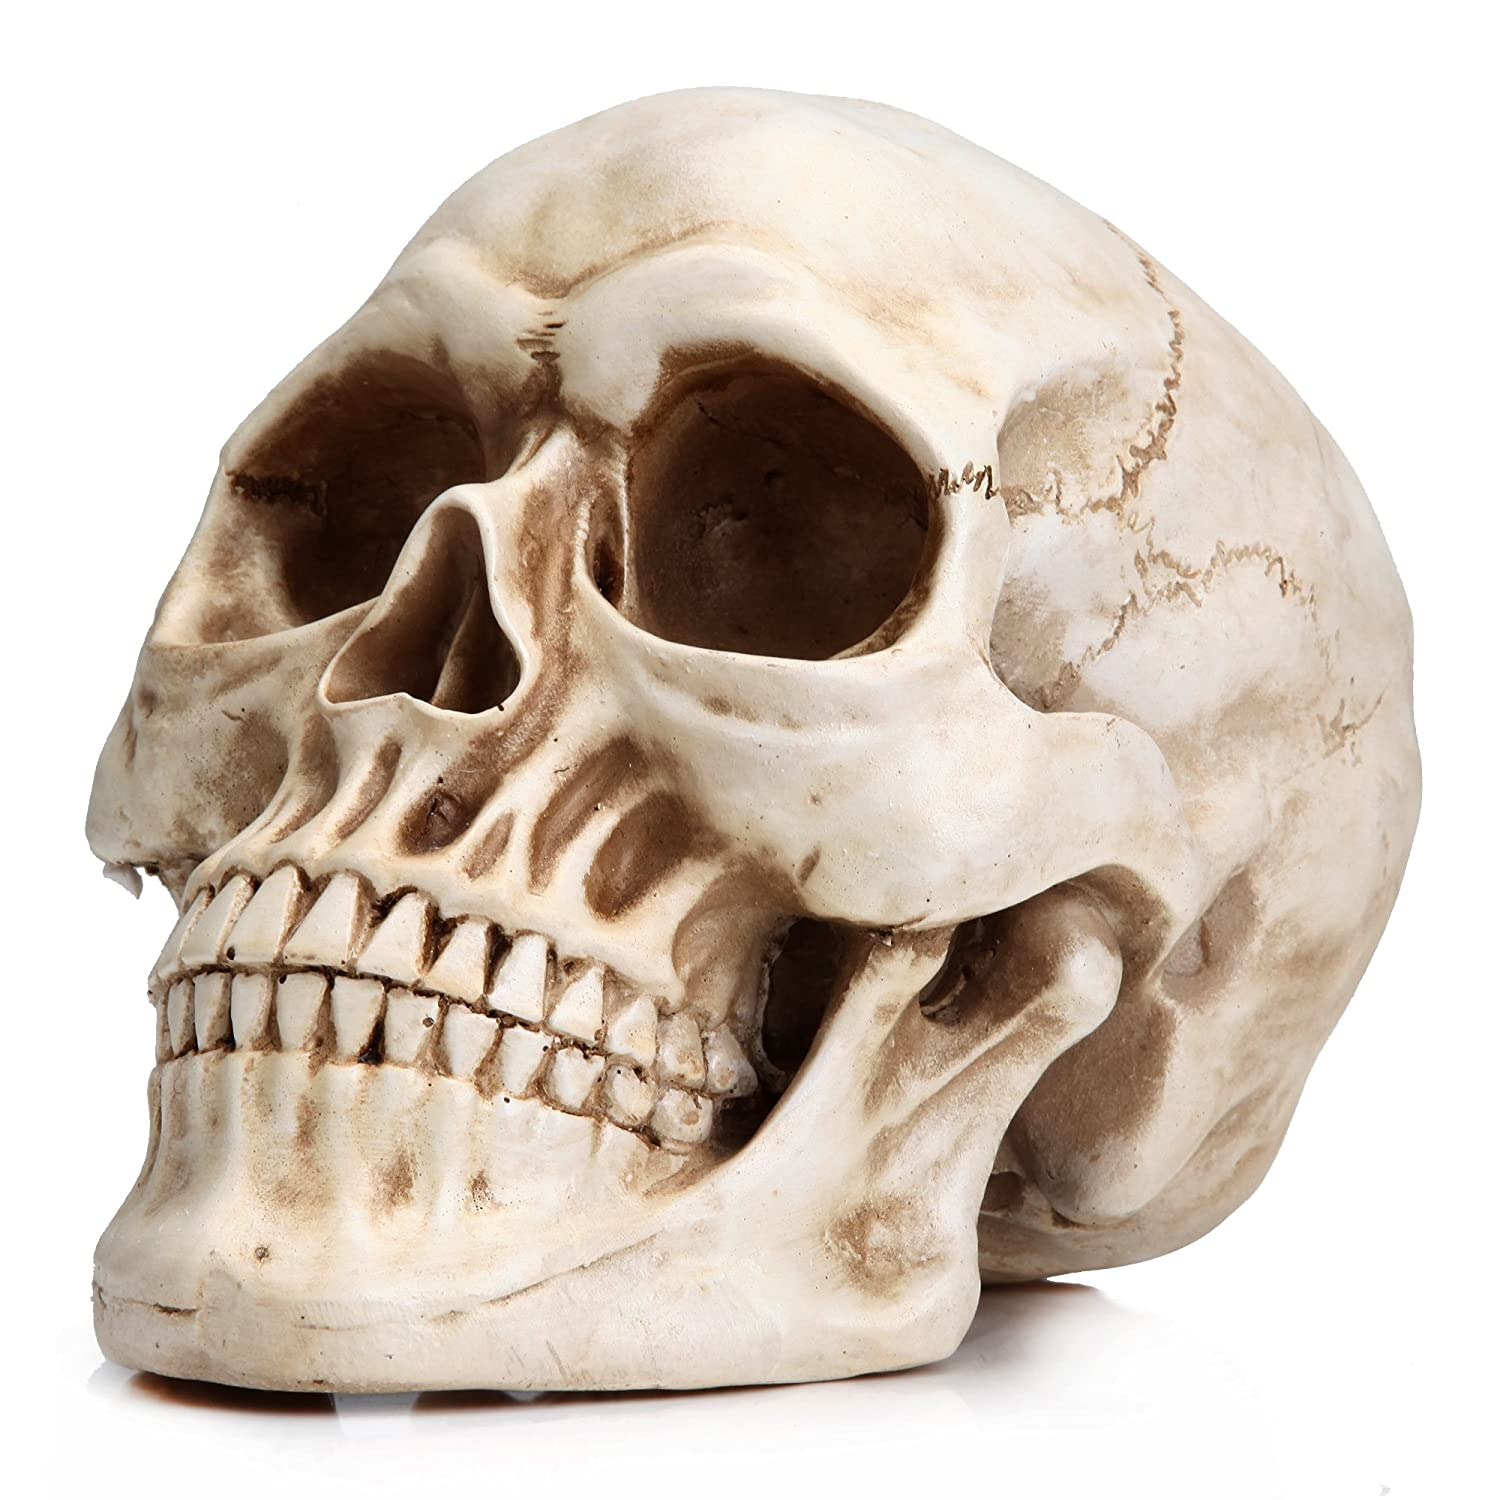 Readaeer life size replica realistic human skull head bone model readaeer life size replica realistic human skull head bone model amazon industrial scientific ccuart Images